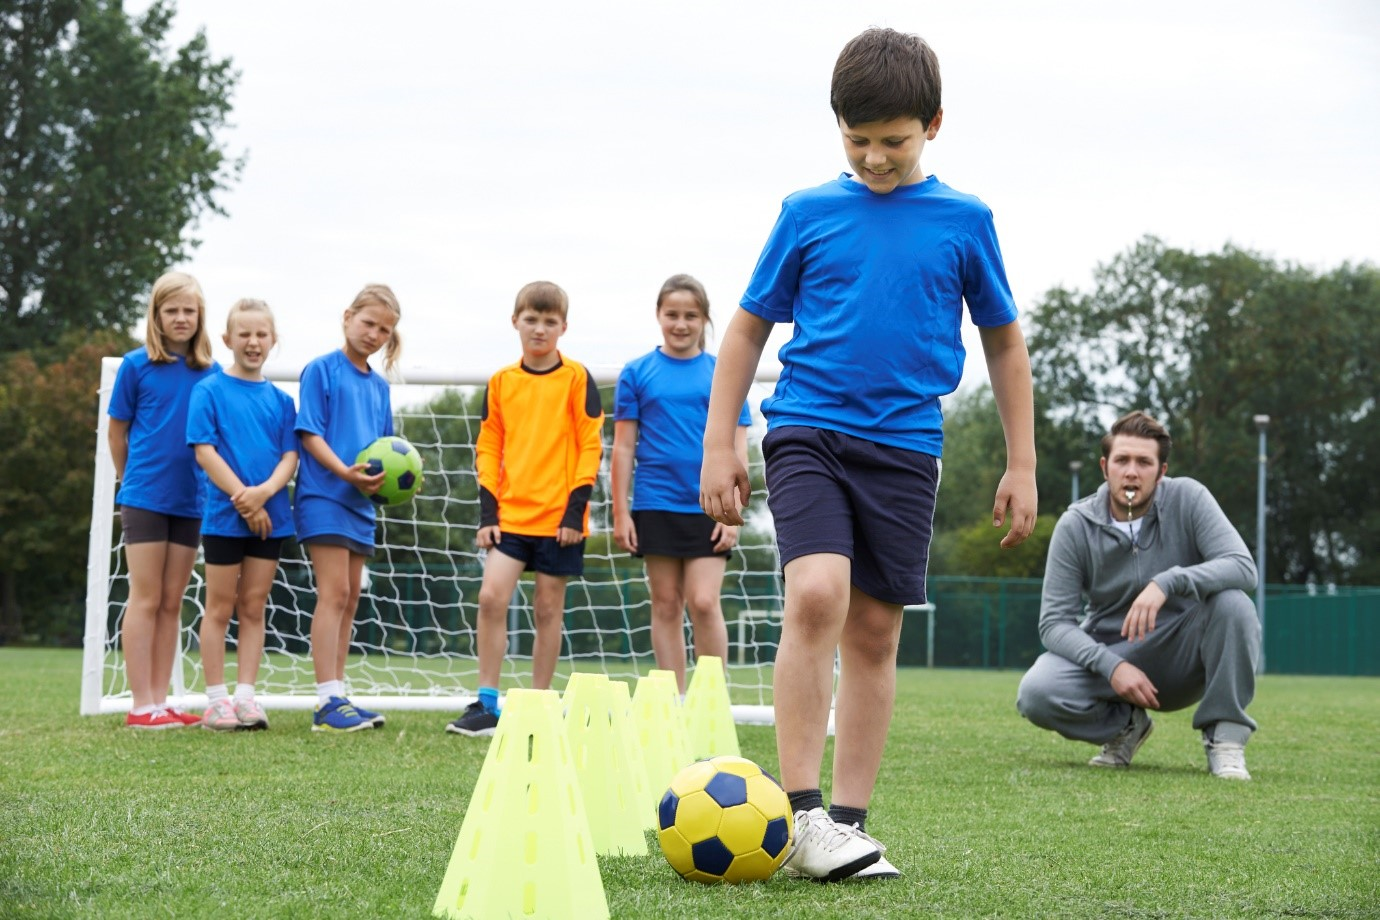 Get Active's Sports Clubs